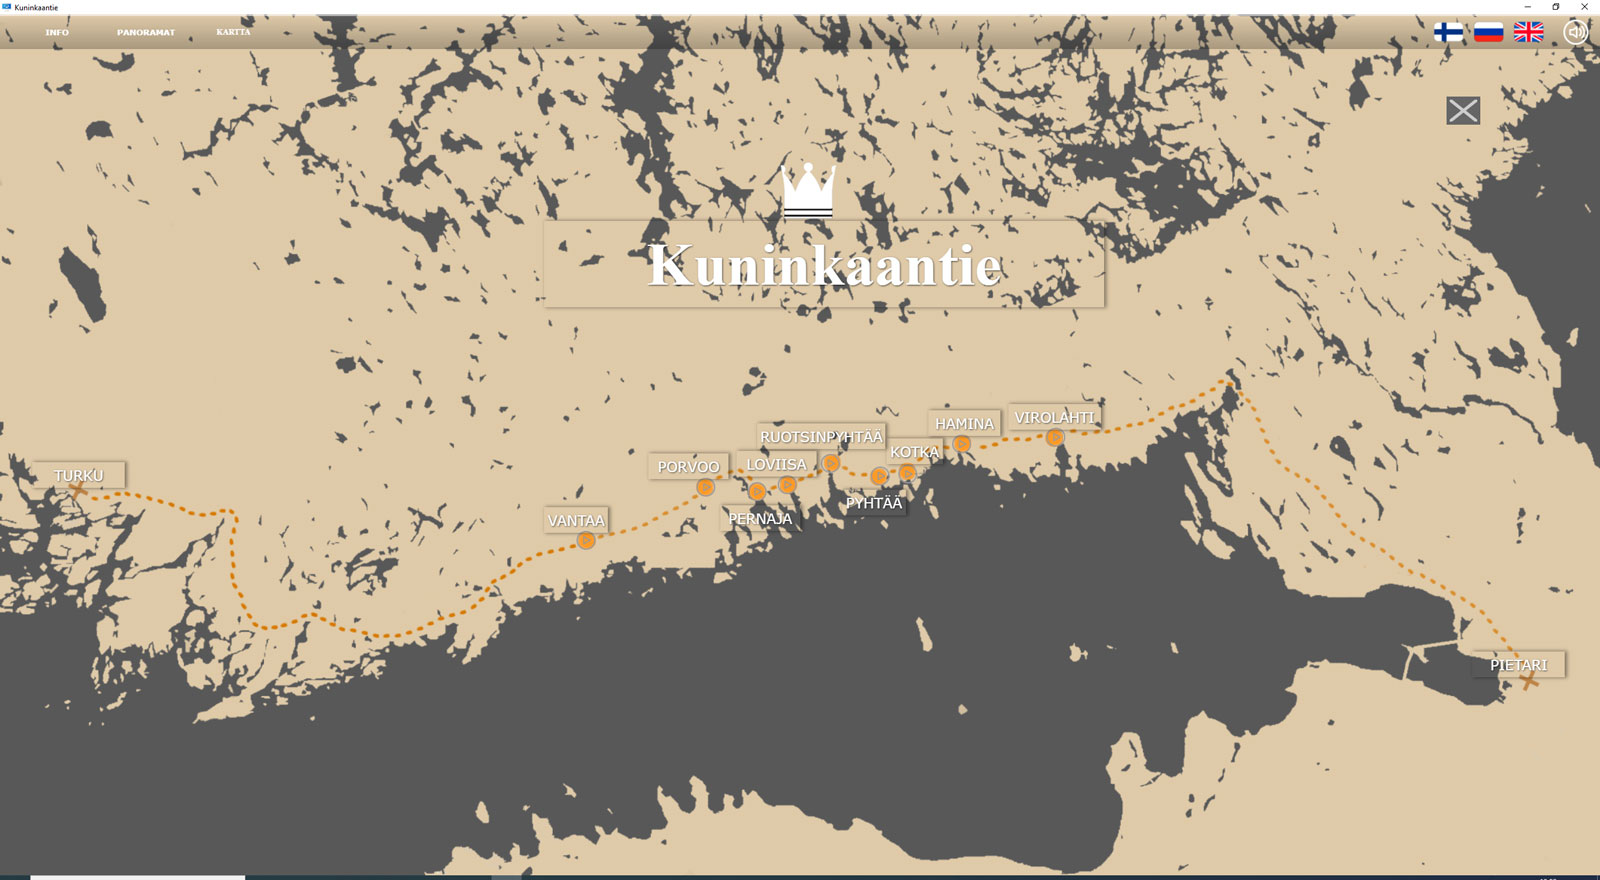 In-app illustration of a map of southern Finland. The King's Road stretches from Turku to St. Petersburg with other destinations along the way.